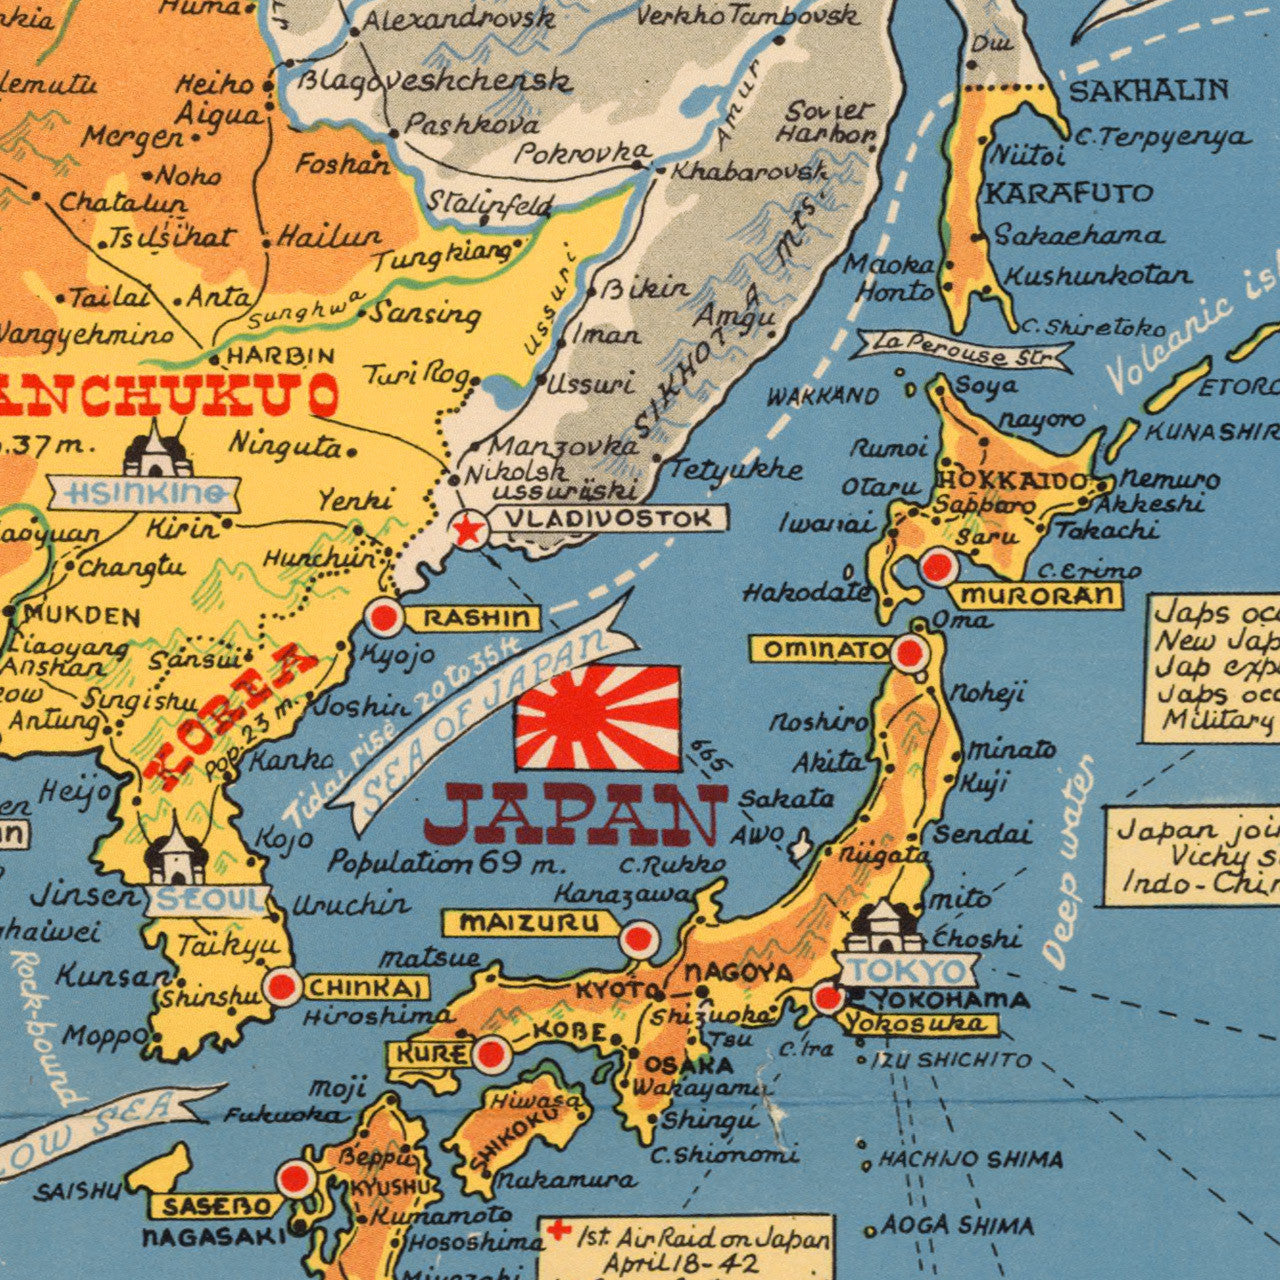 Pacific, 1944, Asian & Pacific Theater, WWII Pictorial Map on map of japan china, map of japan pokemon, japanese territory in ww2, map of japan japanese, extent of japanese empire in ww2, map of japan russia, japan flag ww2, map of japan military, map of japan animation, map of japan 1940s, map of japan christmas, map of japan religion, map of japan modern, map of japan art, map of japan school, map of japan history, map of japan food, map of japan world war 2, map of japan 1950s, map of japan korea,